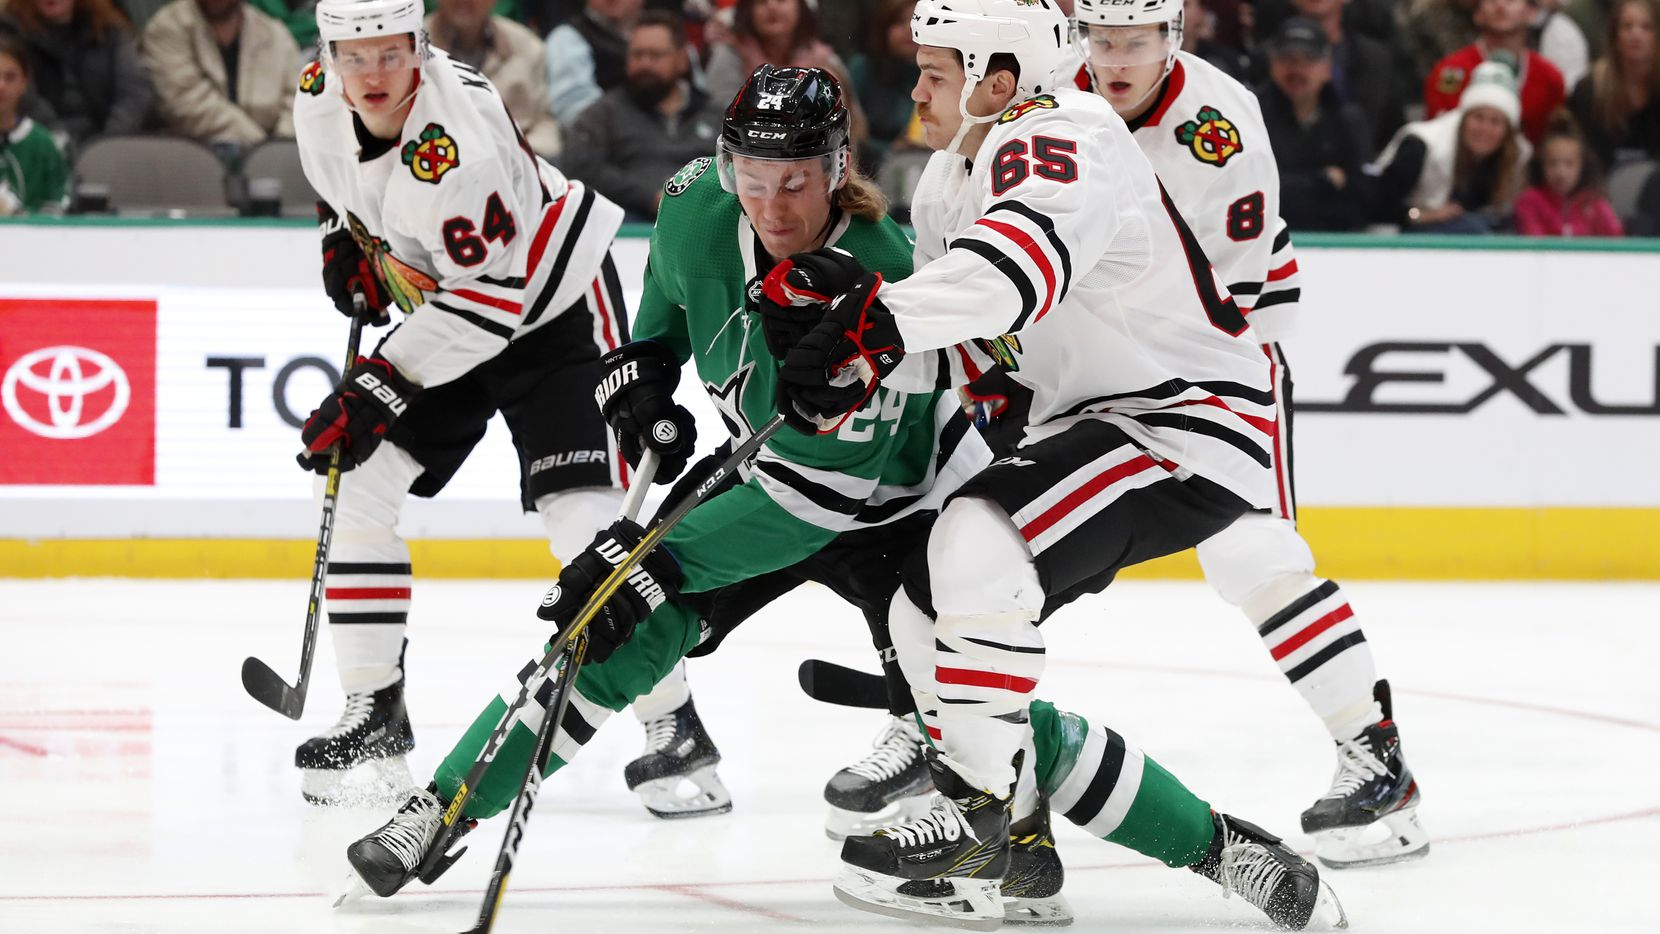 Stars-beat-Blackhawks-2-1-in-shootout-for-6th-straight-win,-by-return-of-Roope-Hintz-and-John-Klingberg